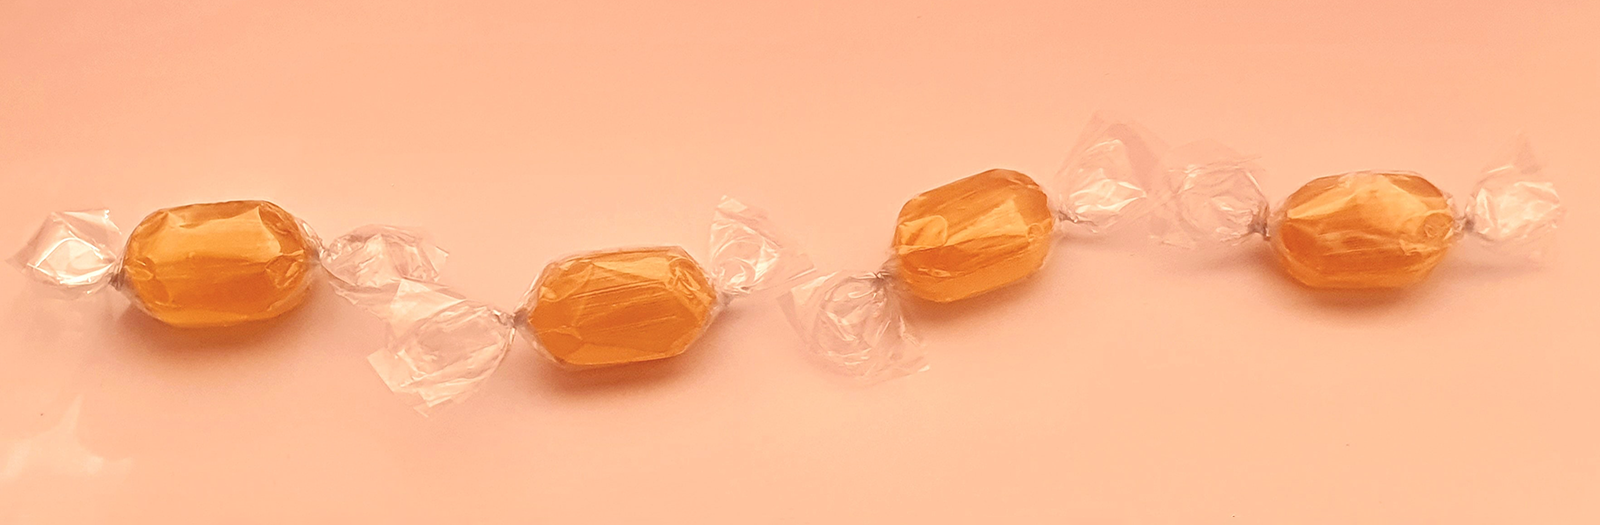 candy with plastic wrapper